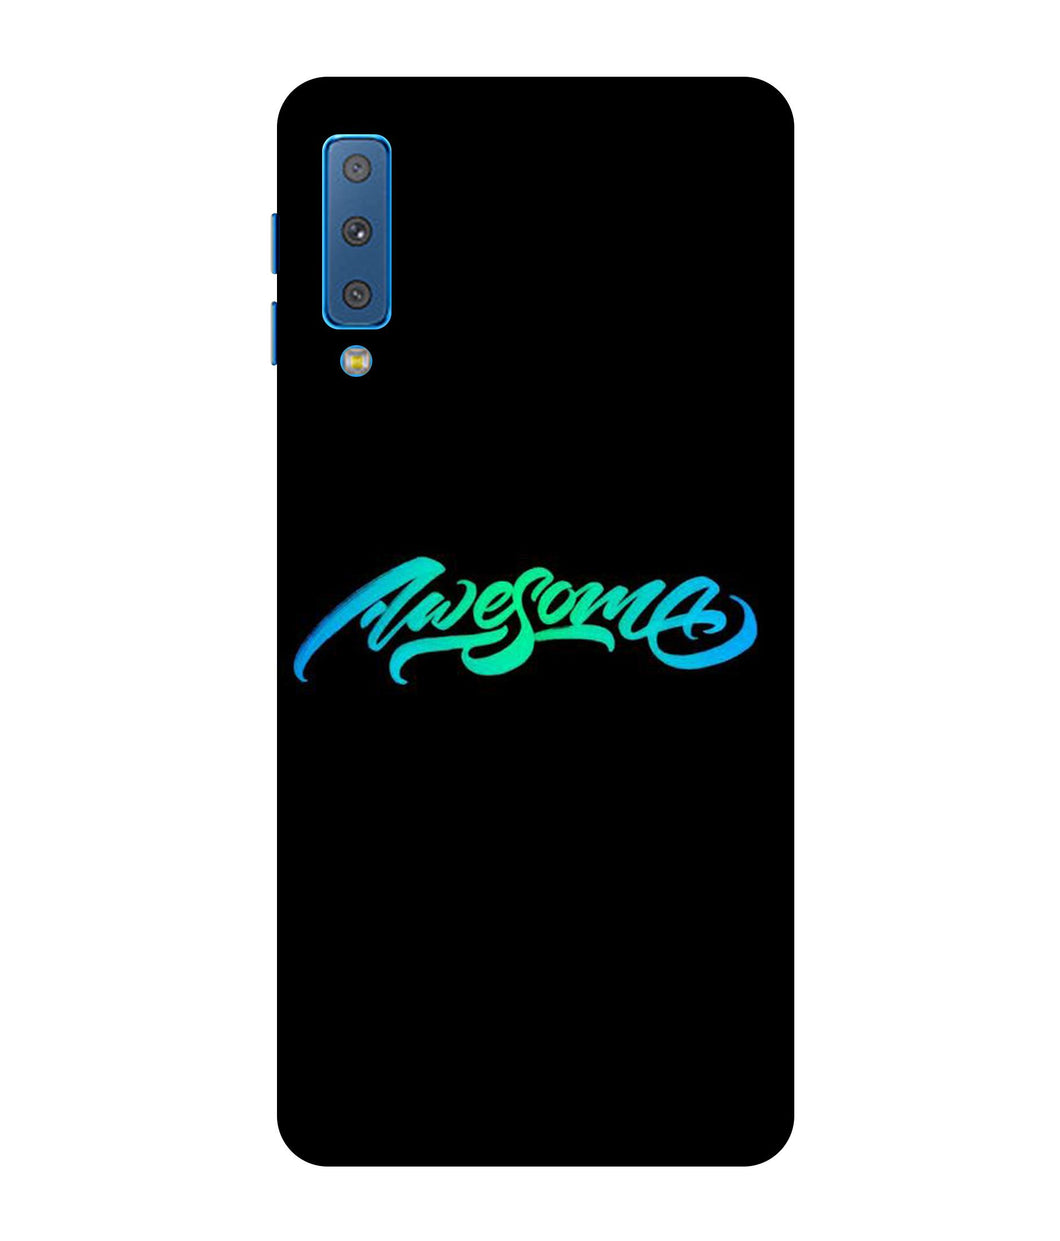 Samsung Galaxy A7-2018  Awesome Mobile cover